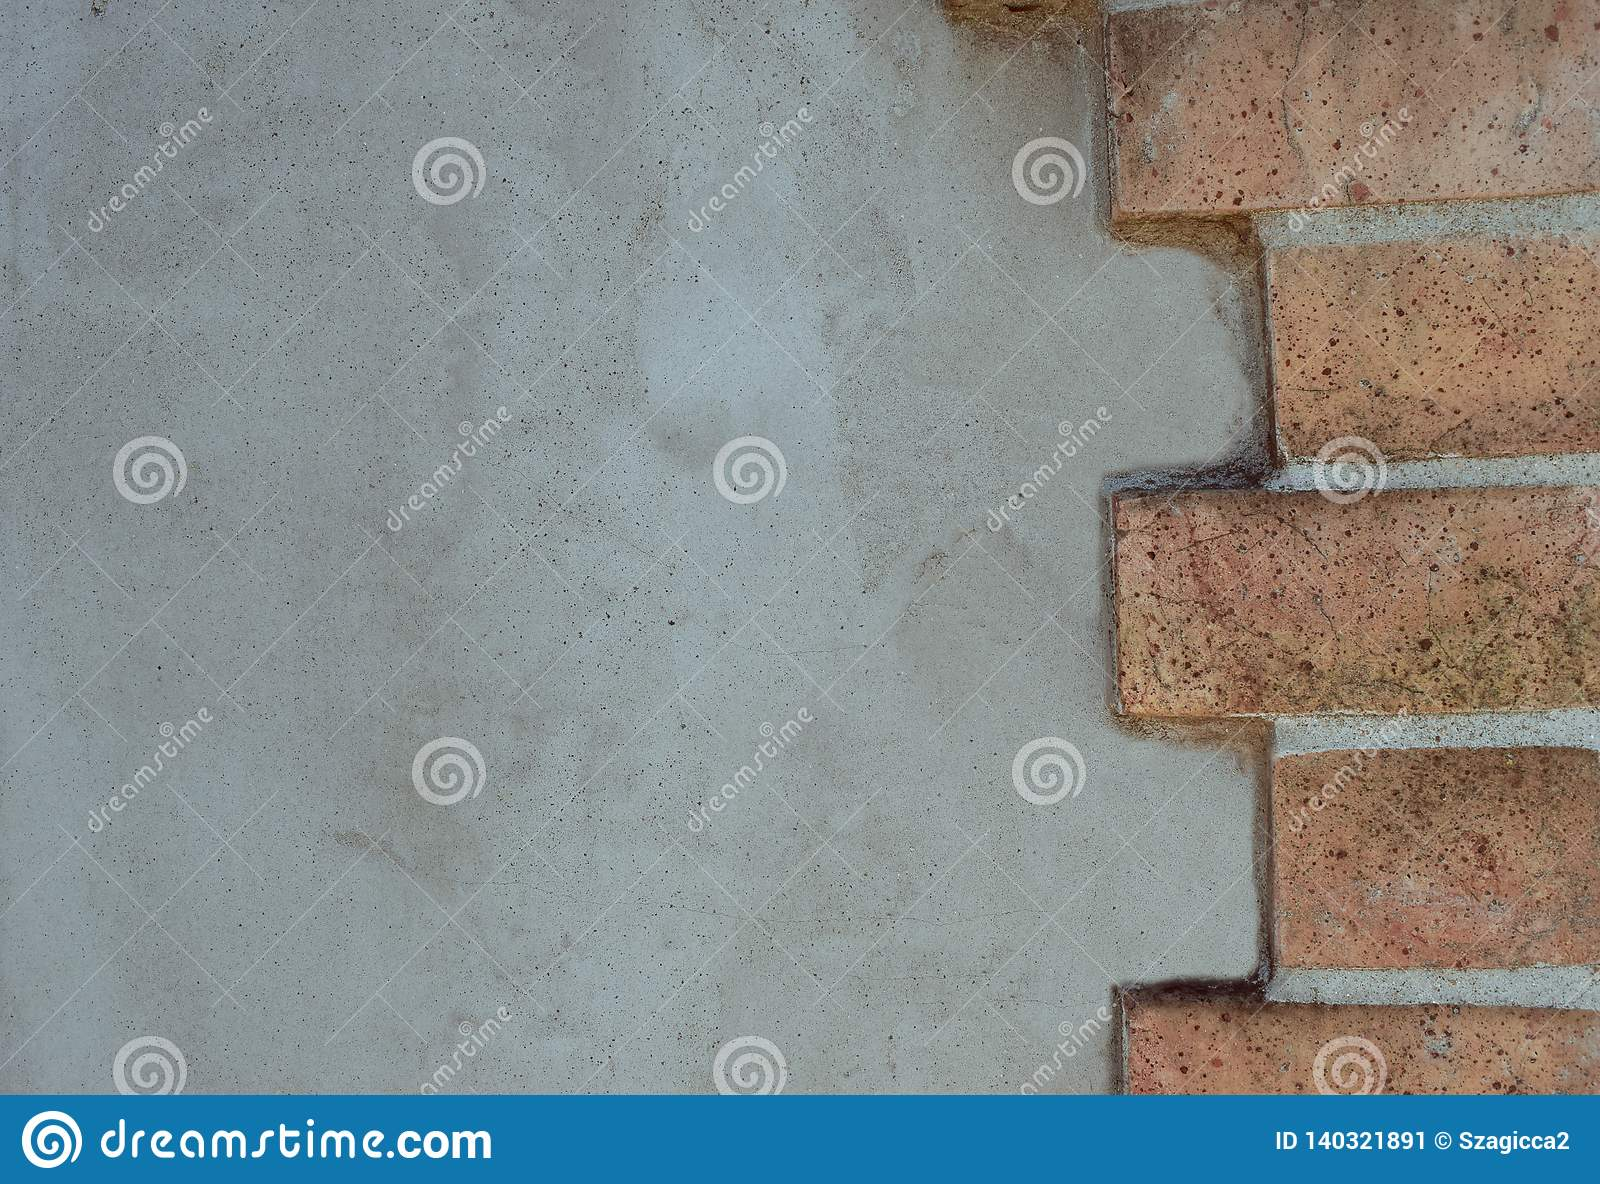 Background of a wall of brick and stone cemented with concret.